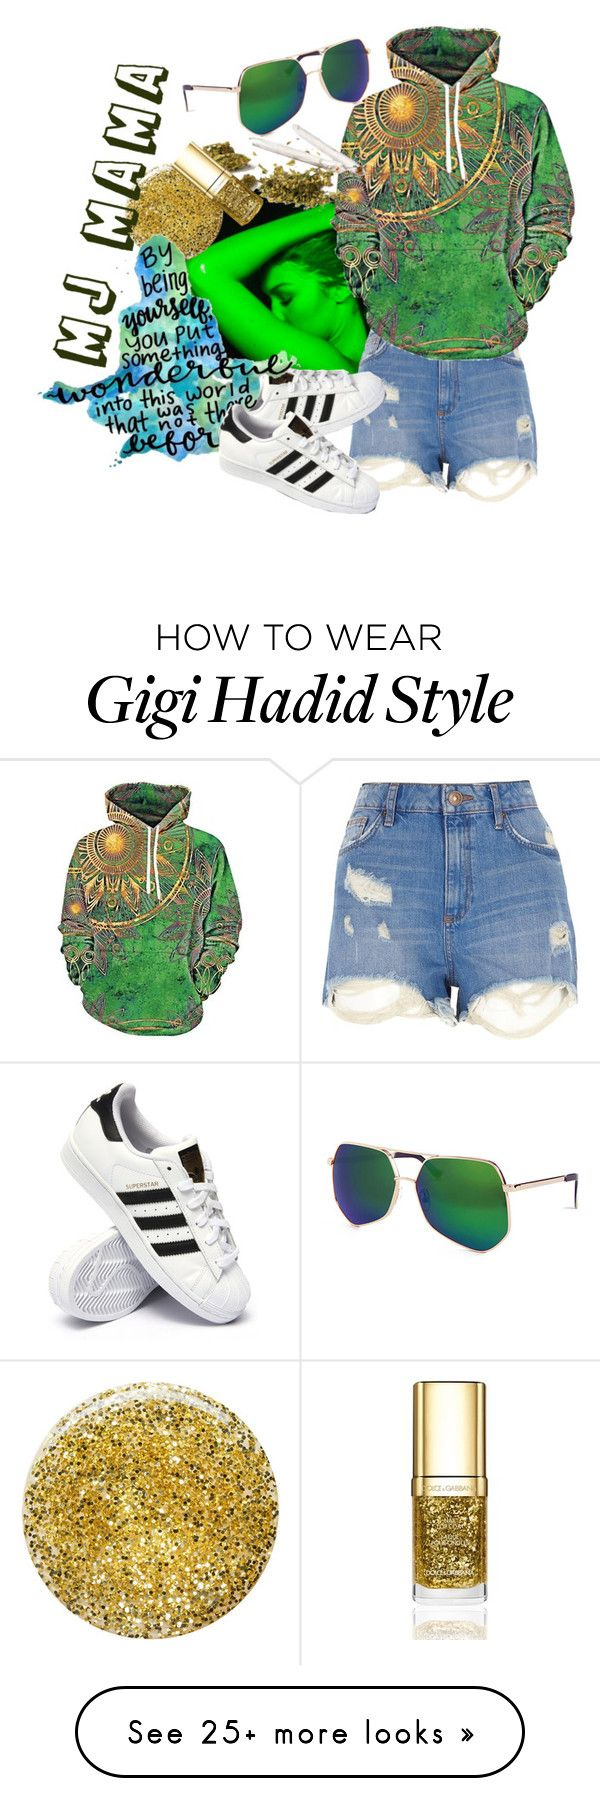 """hey DJ, go MJ!"" by babnovas on Polyvore featuring River Island, adidas, Burberry, Dolce&Gabbana, Grey Ant and emeraldgreen"